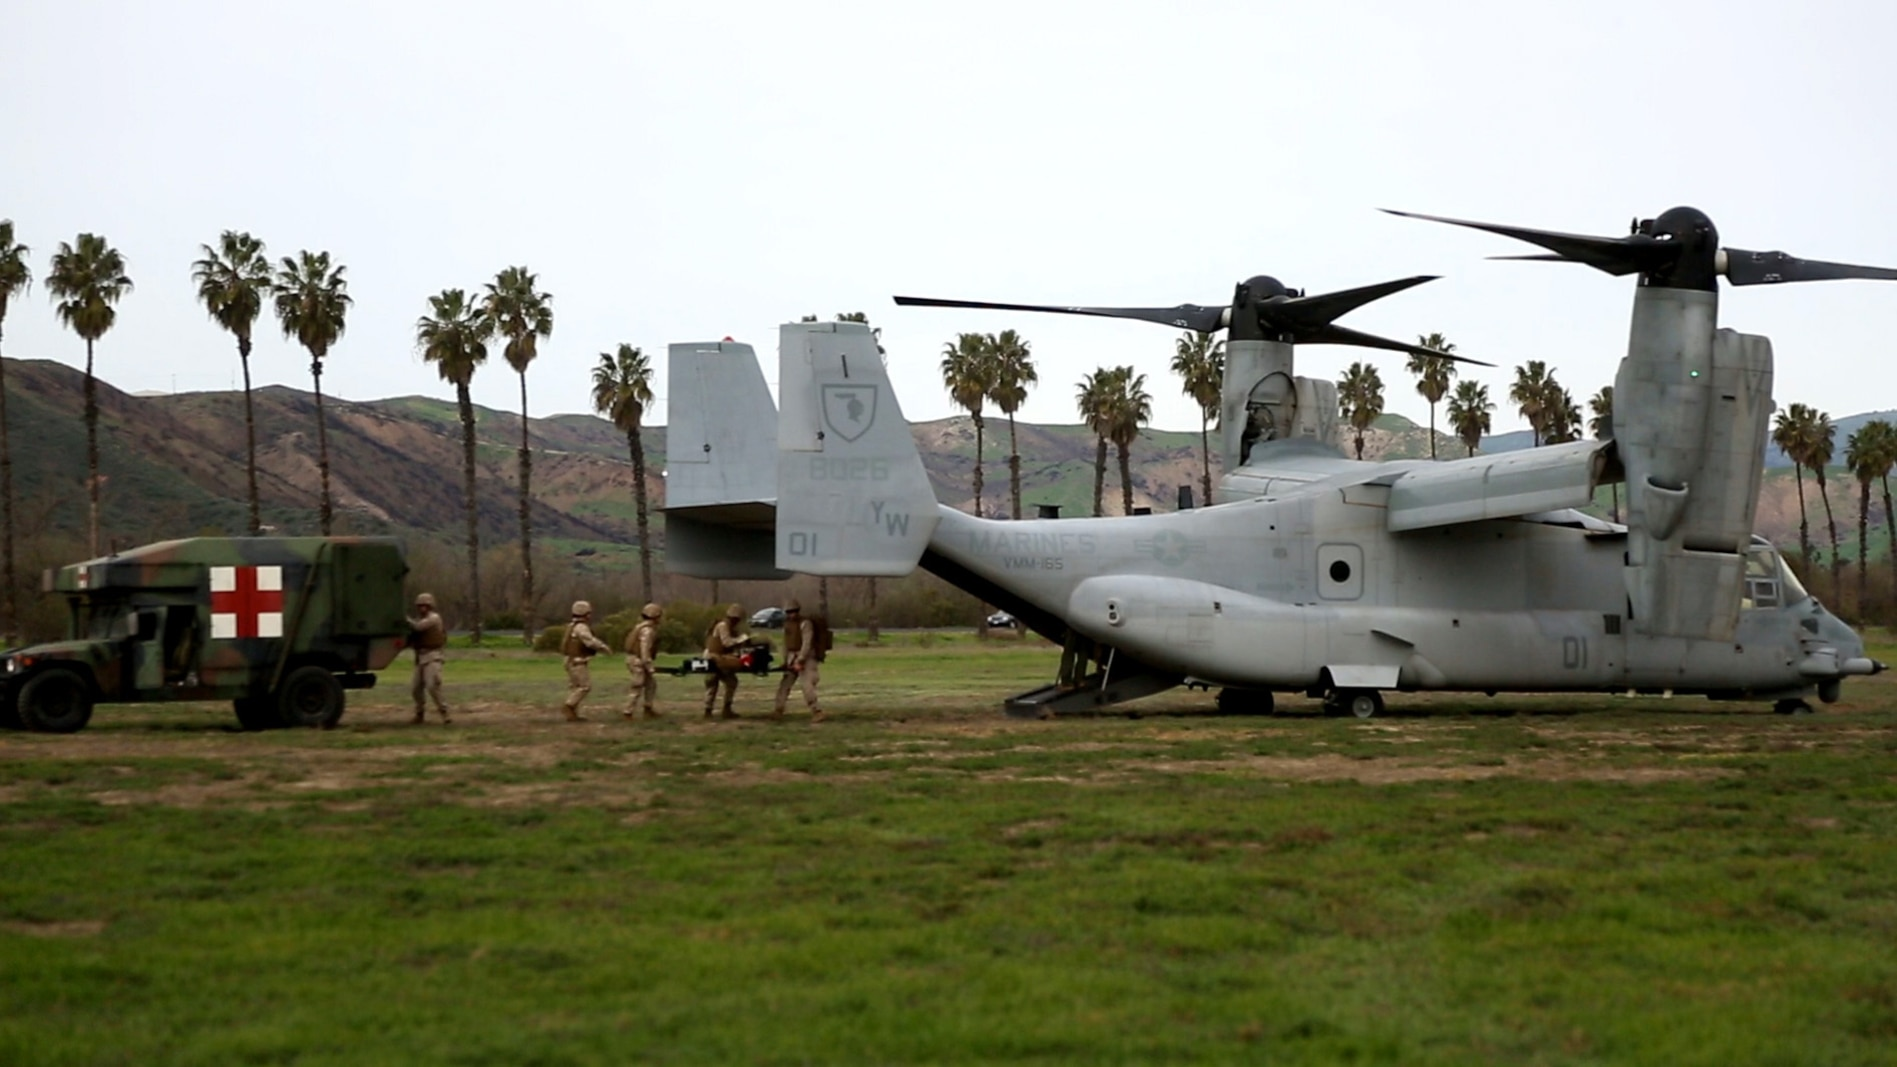 Corpsmen with Alpha Surgical Company, 1st Medical Battalion, 1st Marine Logistics Group, transfer a simulated casualty onto an MV-22 Osprey during an en-route care exercise aboard Camp Pendleton, Calif., Jan. 28, 2015. During the four-day exercise, corpsmen trained to prepare a Special-Purpose Marine Air-Ground Task Force group that is going to forward deploy later this year. The more than 40 corpsmen set up a shock trauma platoon facility, or mobile emergency room, to treat simulated casualties. The casualties were stabilized in the STP and then flown out via aircraft. (U.S. Marine Corps photo by Sgt. Laura Gauna/Released)